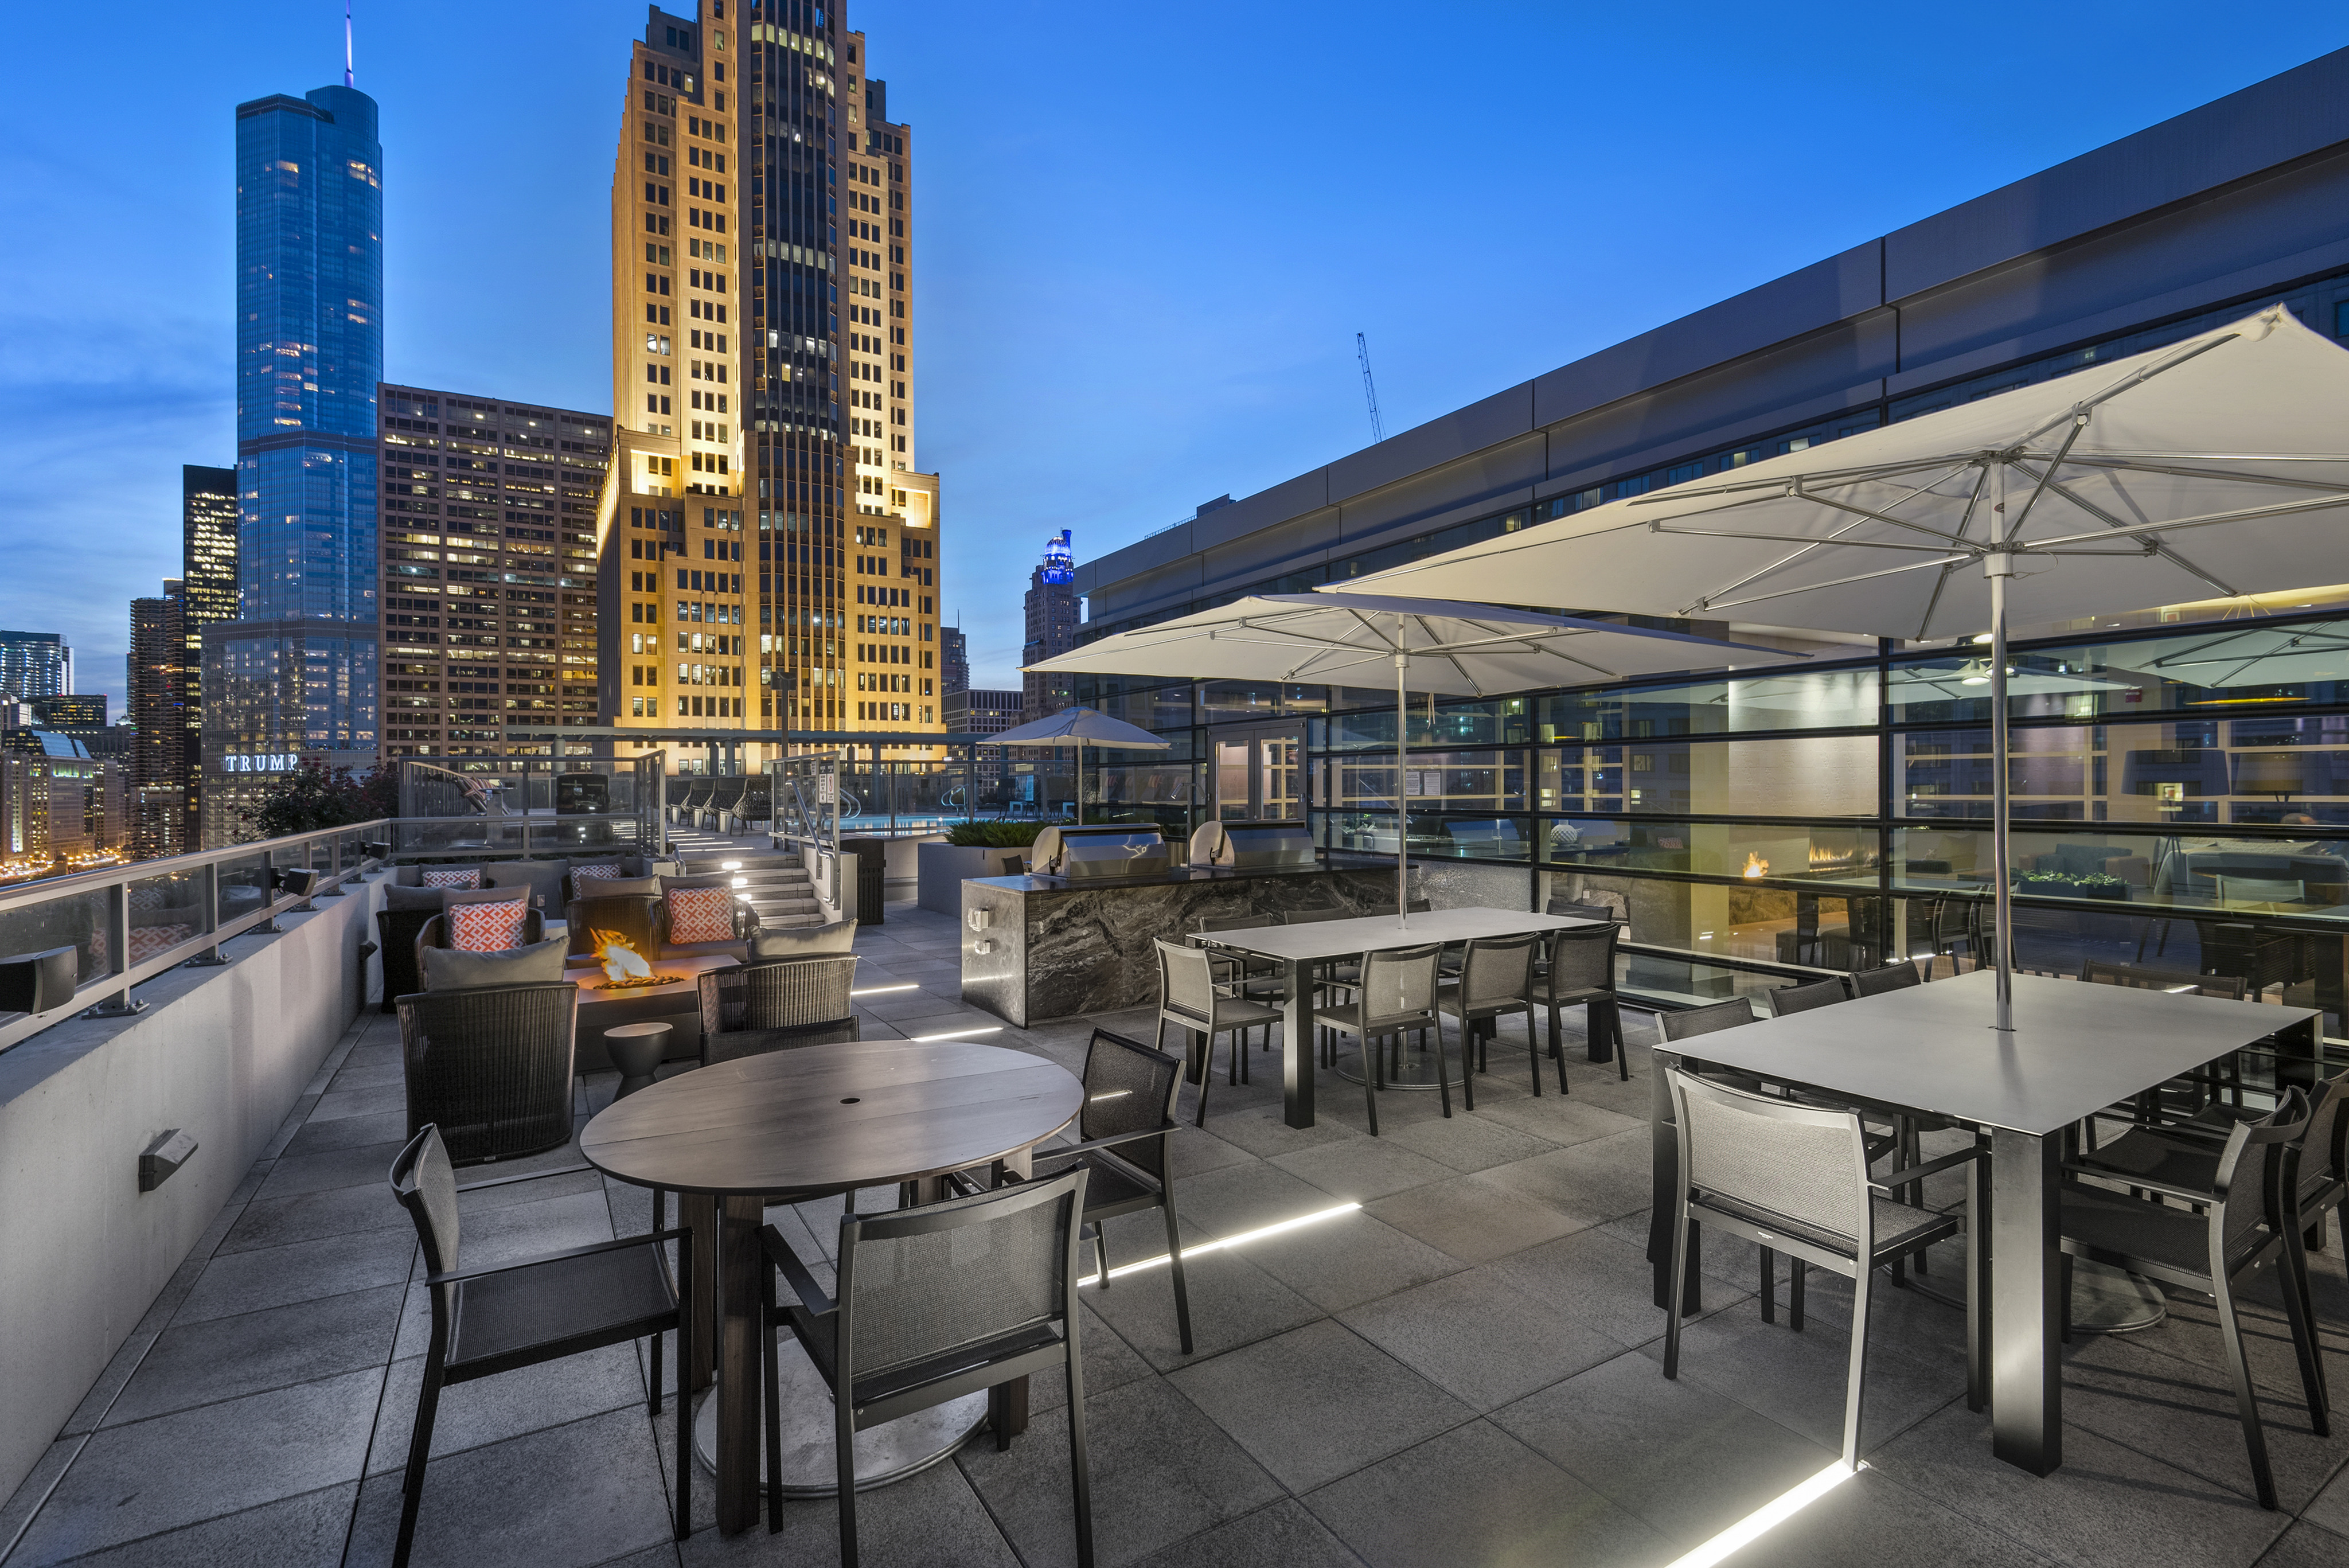 Rooftop lounge area with city views